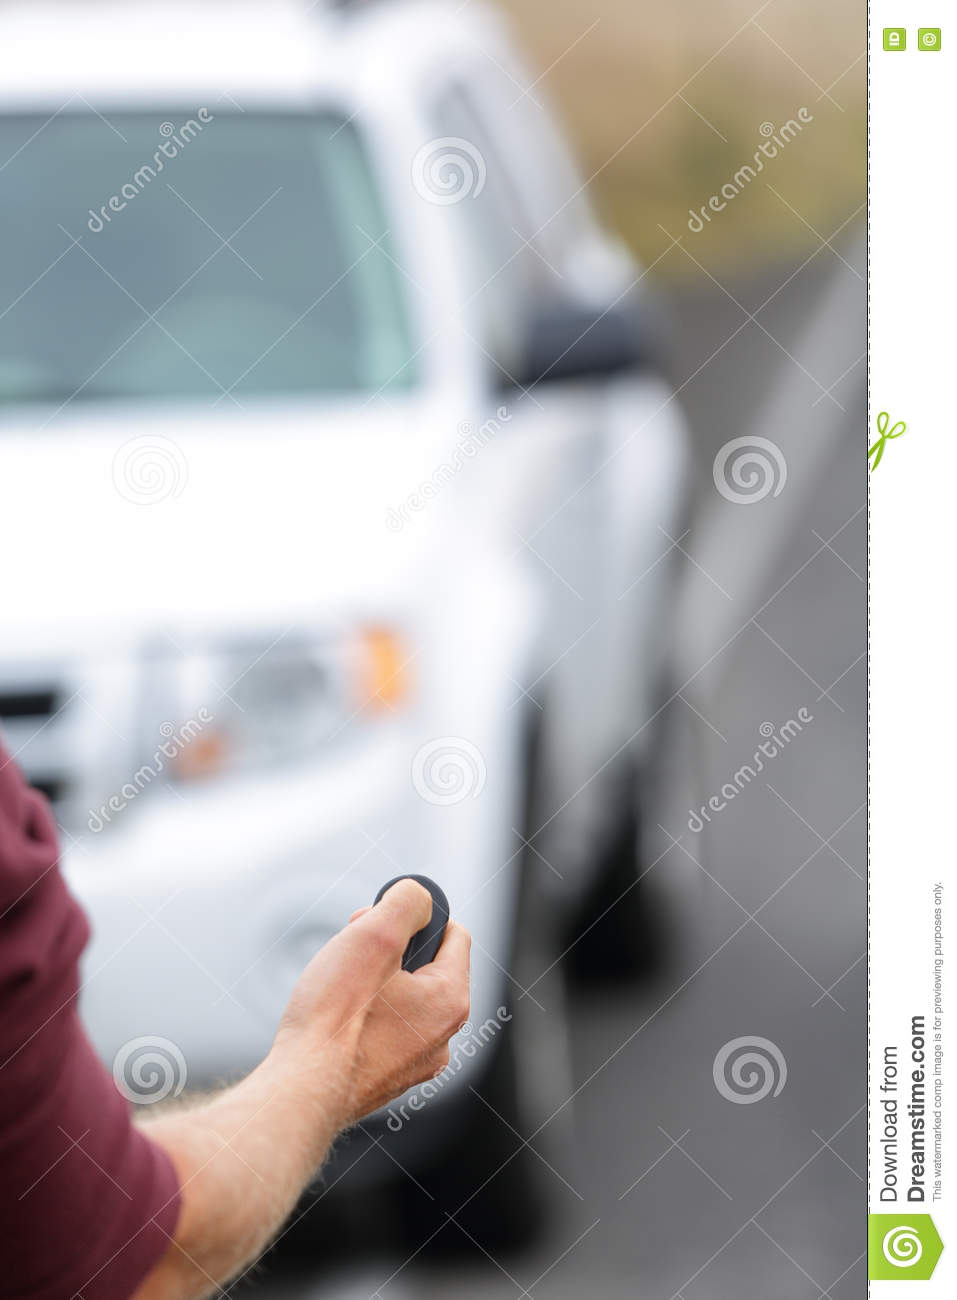 Driver starting car with keyless remote control